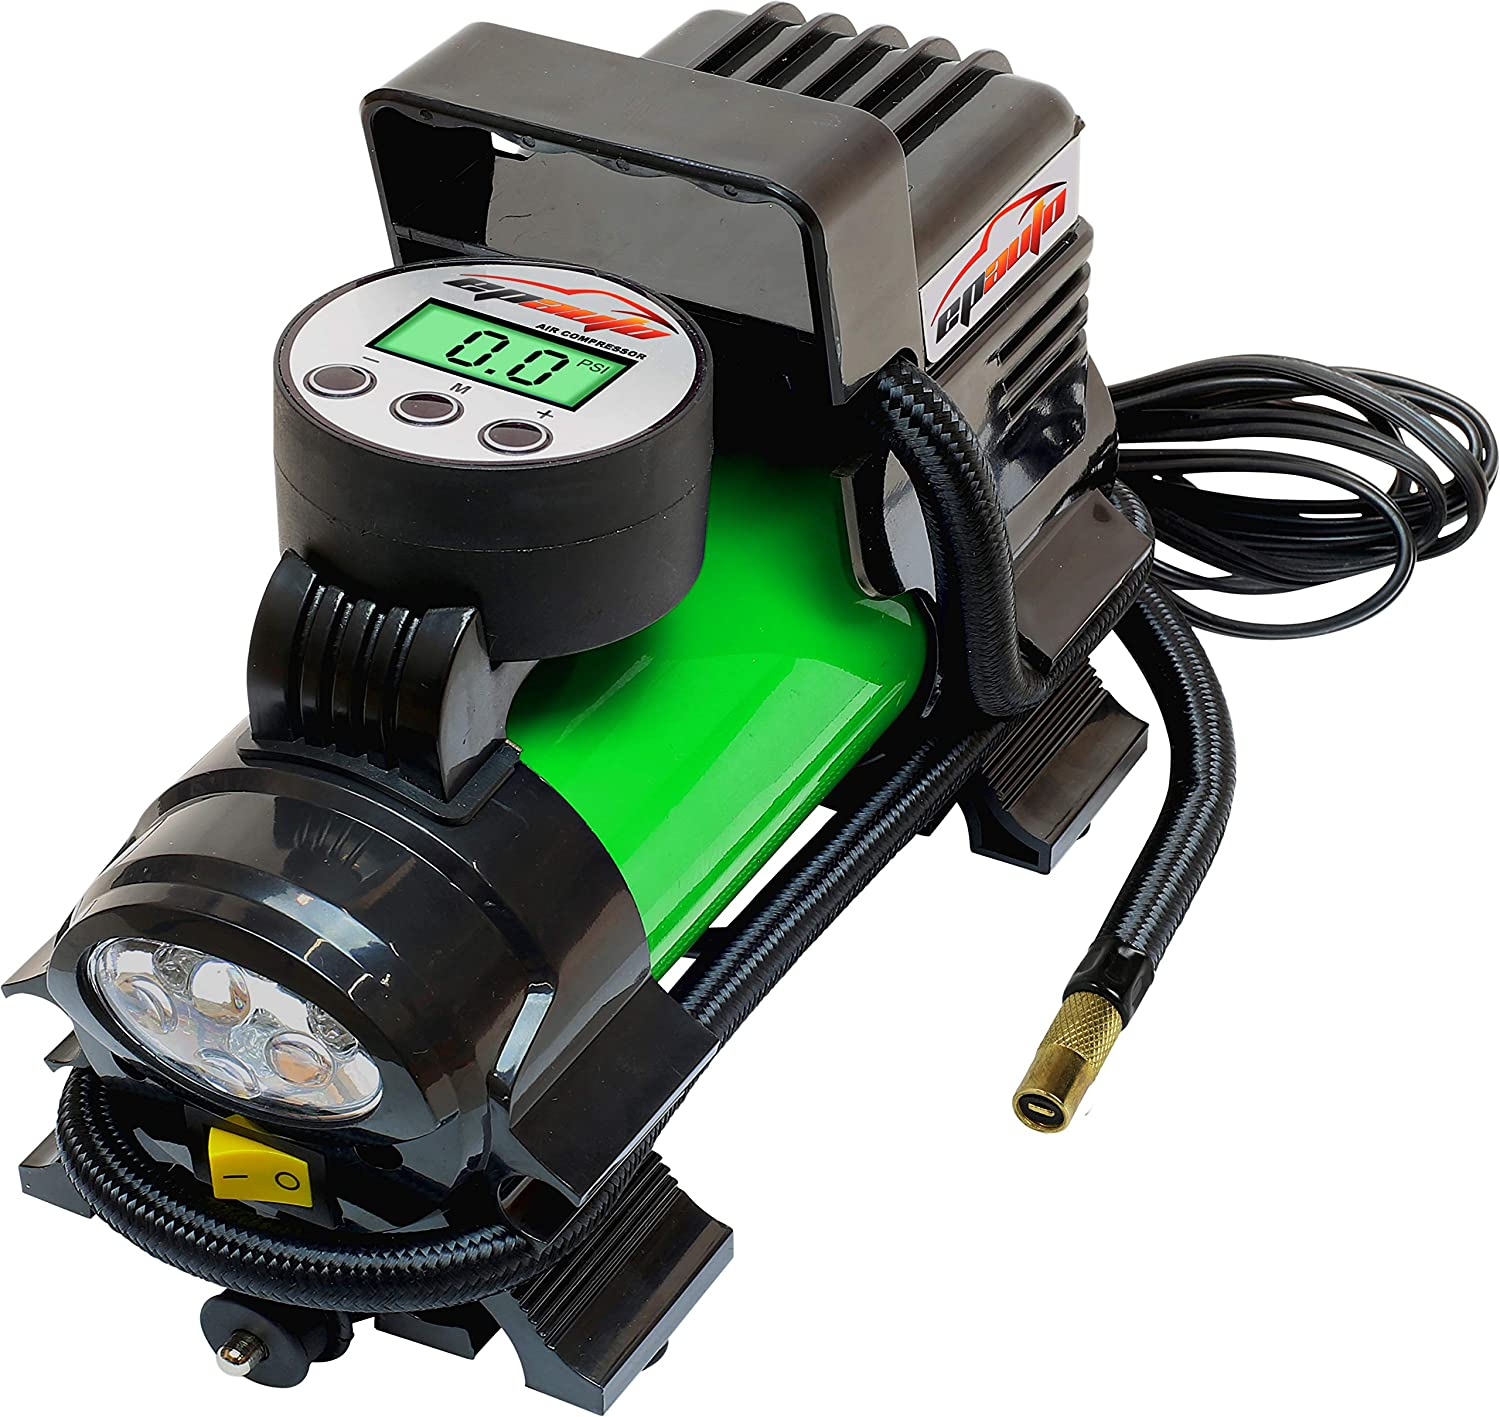 Gifts-For-19-Year-Old-Boy-Portable-Air-Compressor-Pump